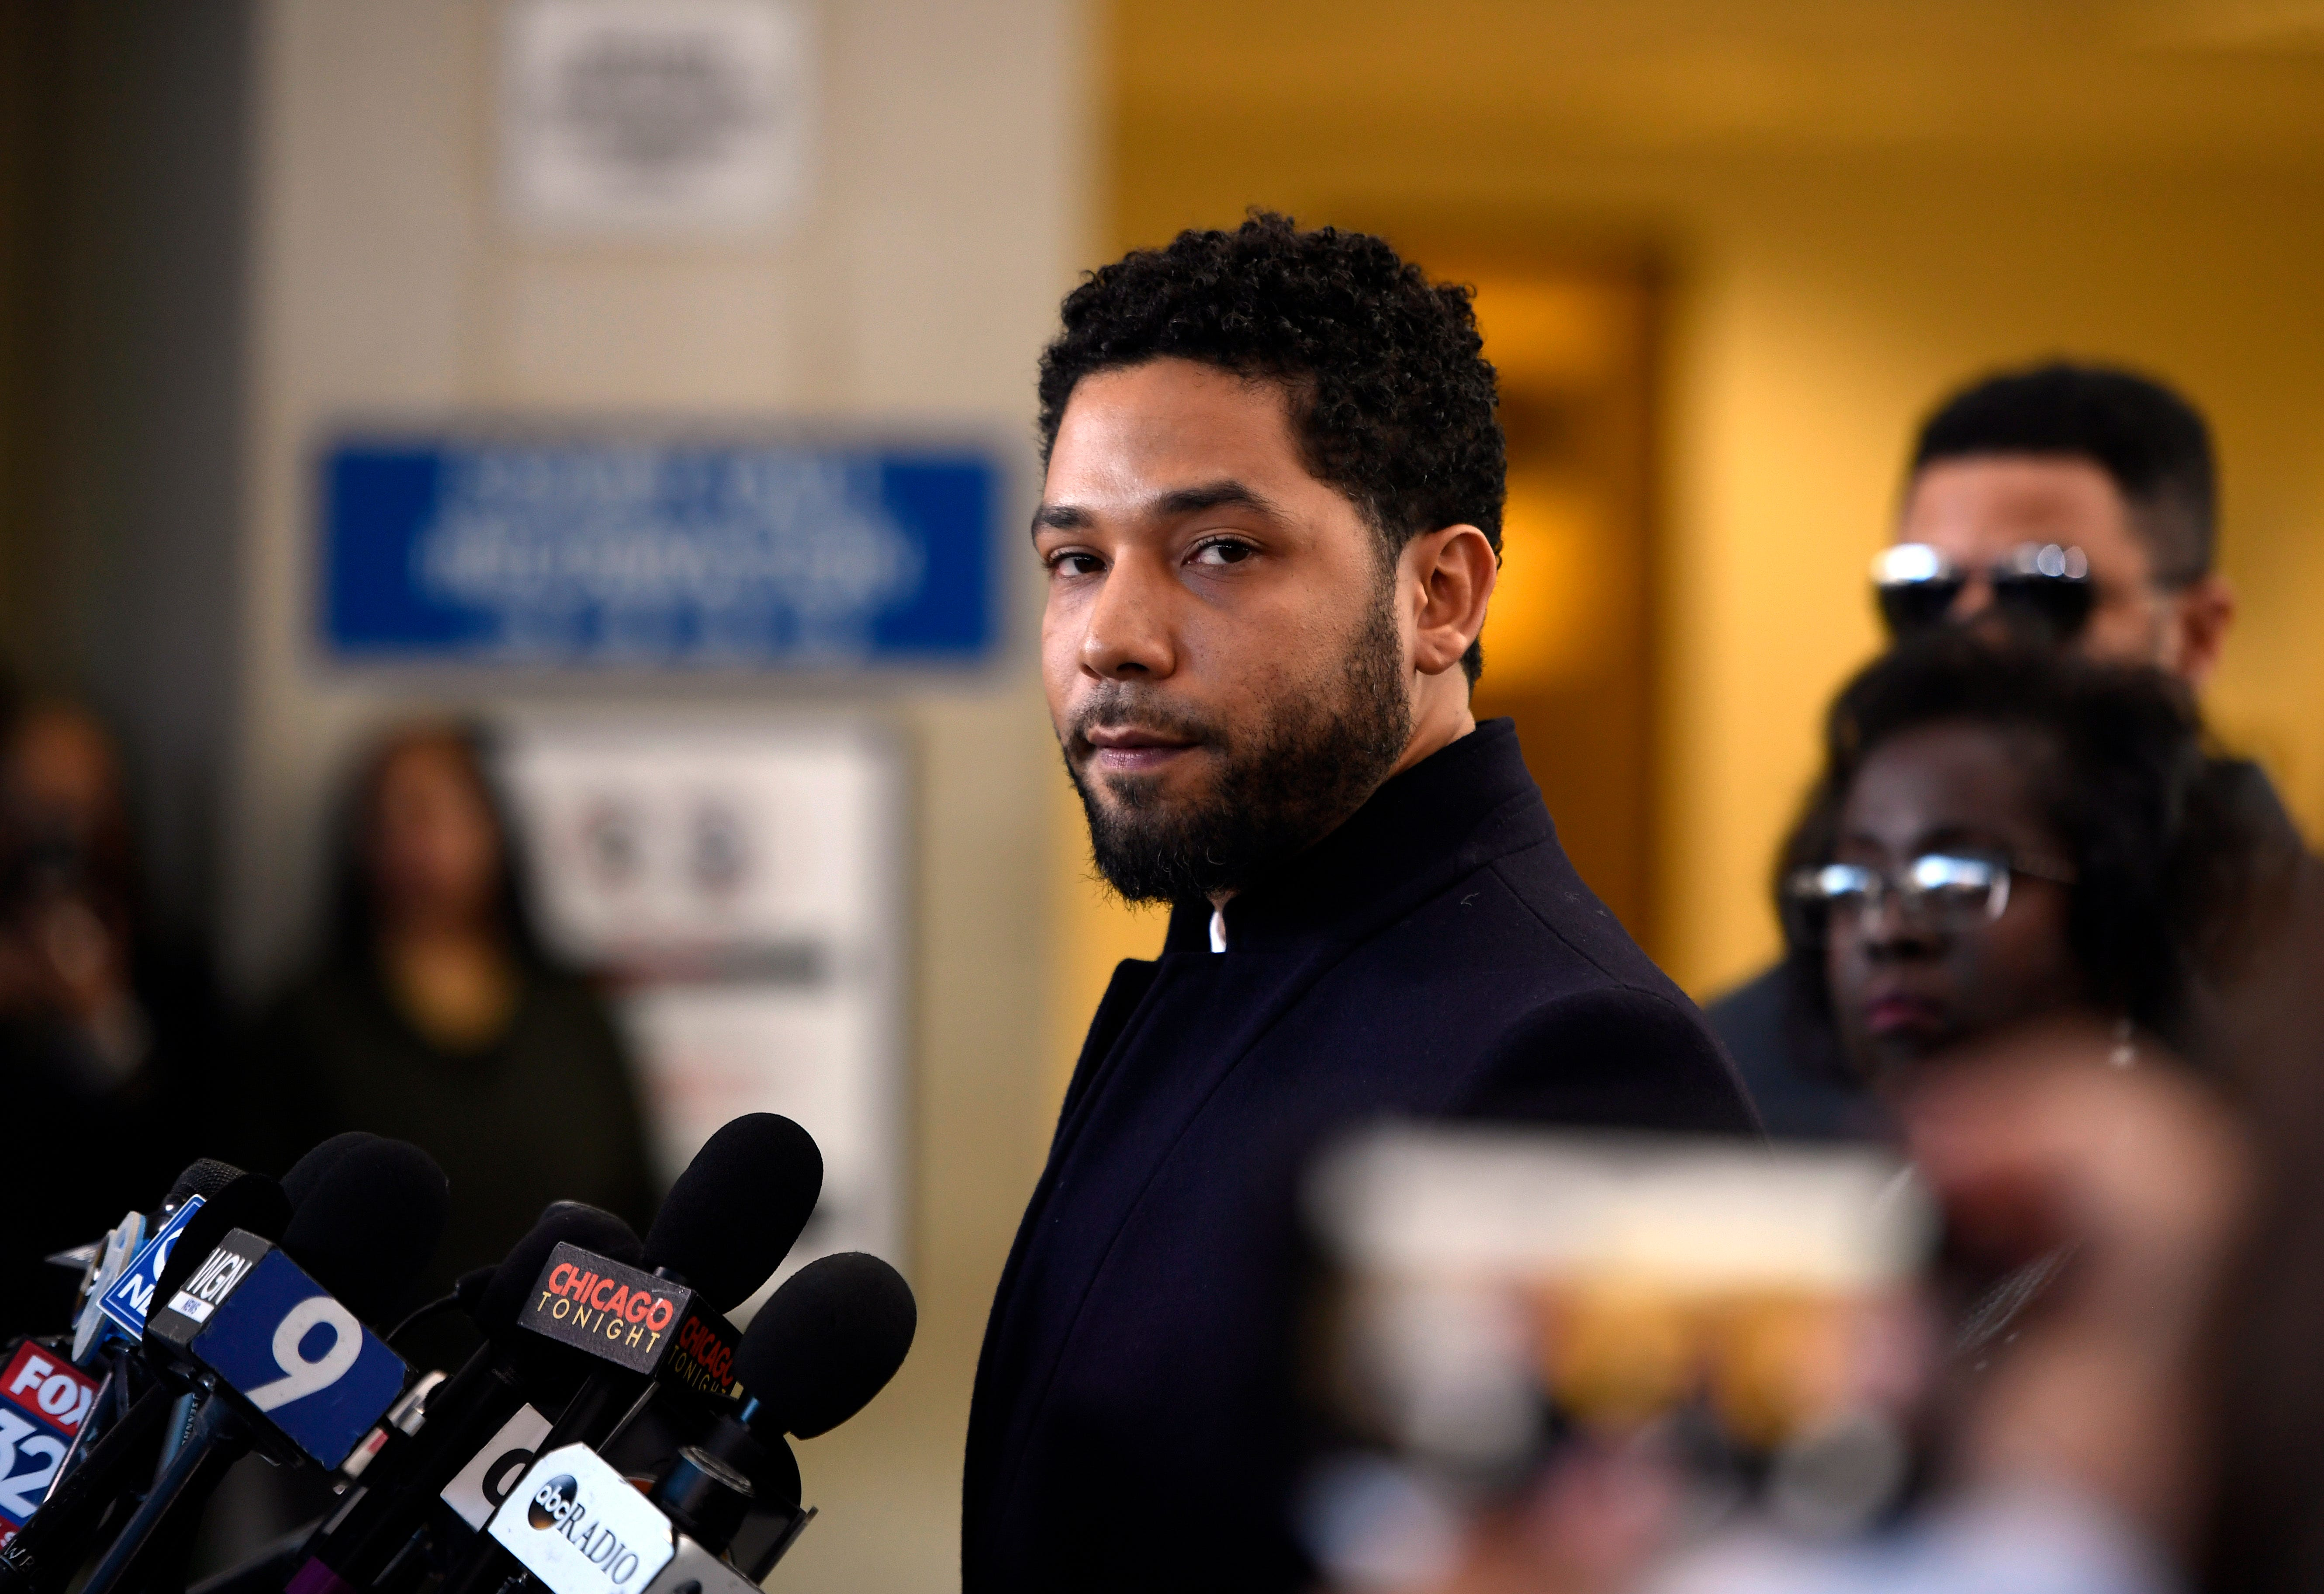 'SNL' mocks Jussie Smollett in sketch that doubts his innocence. Did it go too far?